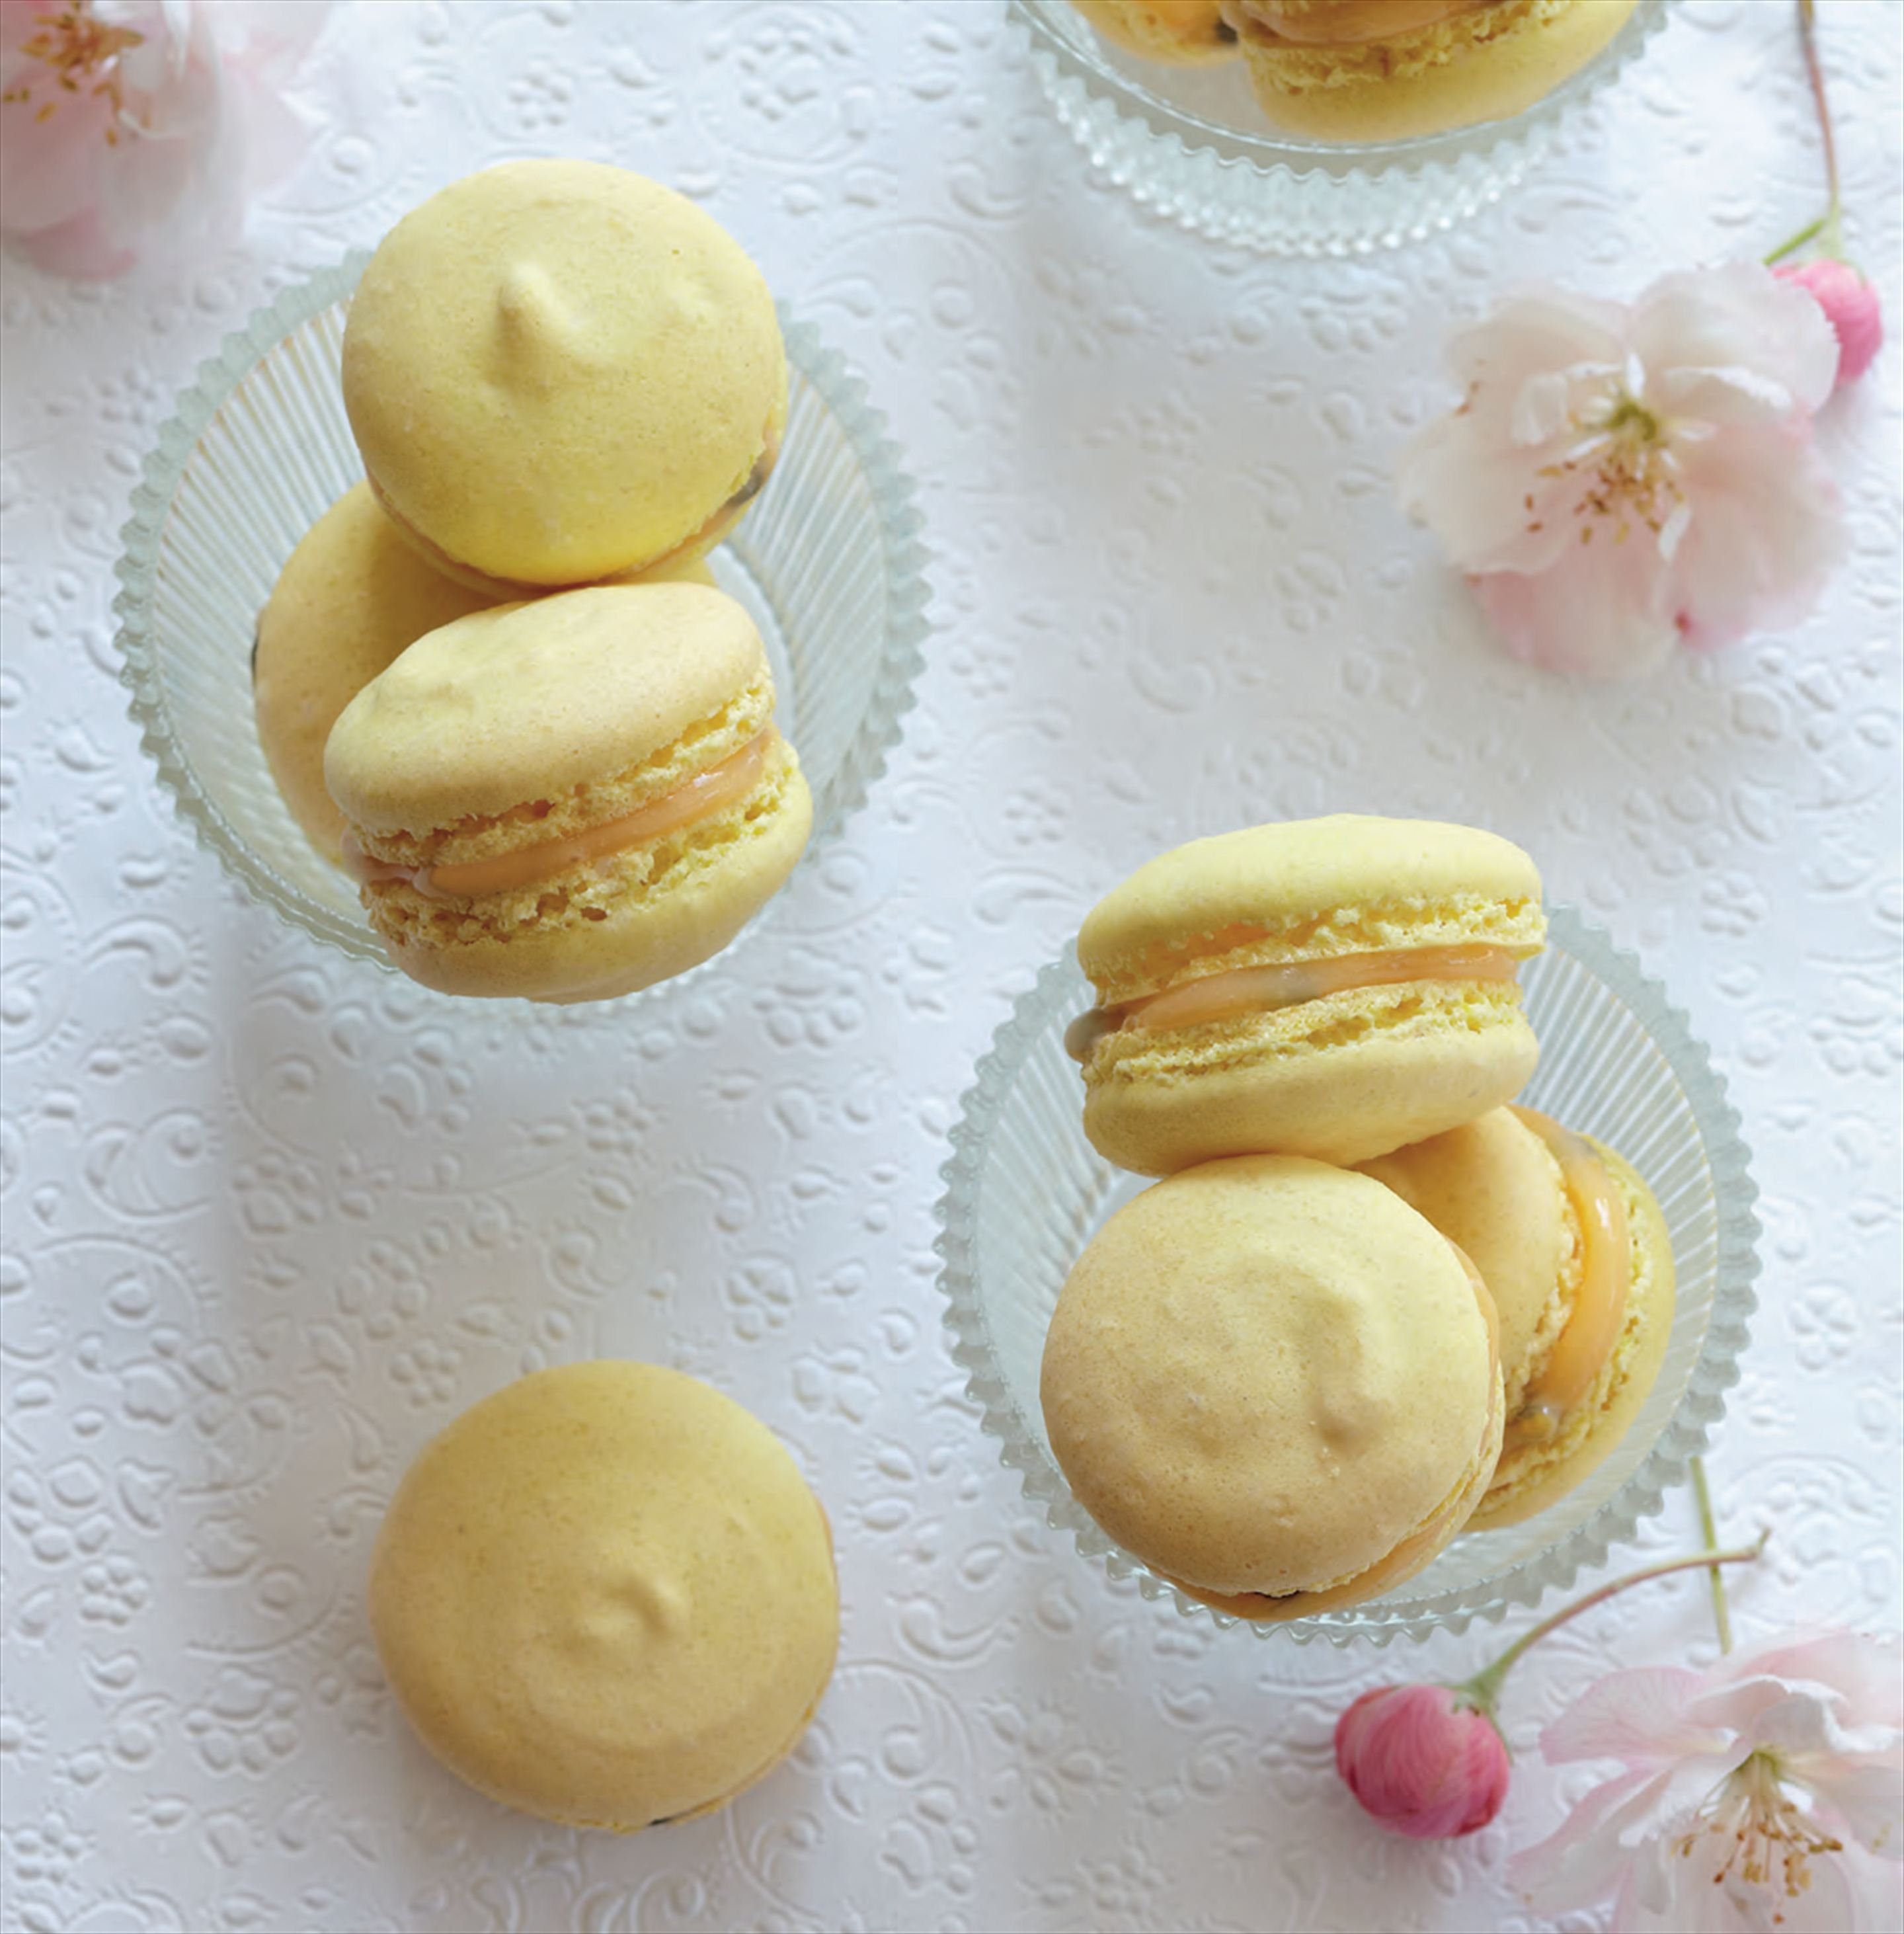 Passionfruit macarons